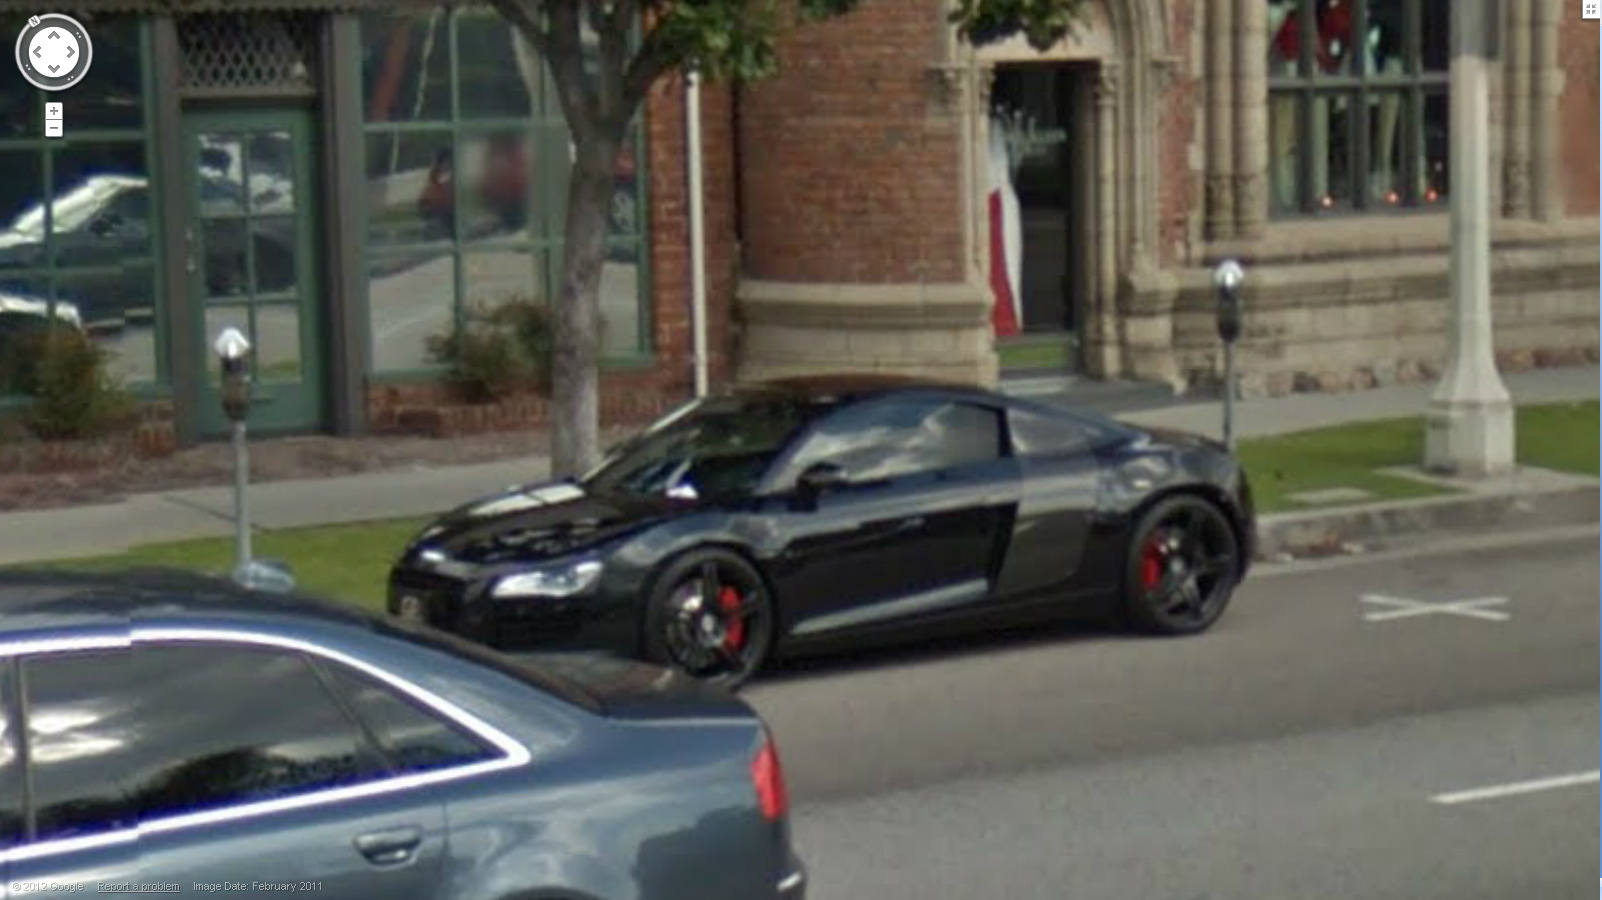 Blacked out Audi R8 V10 | Zero to 60 Times Car Blog | The Car Blog